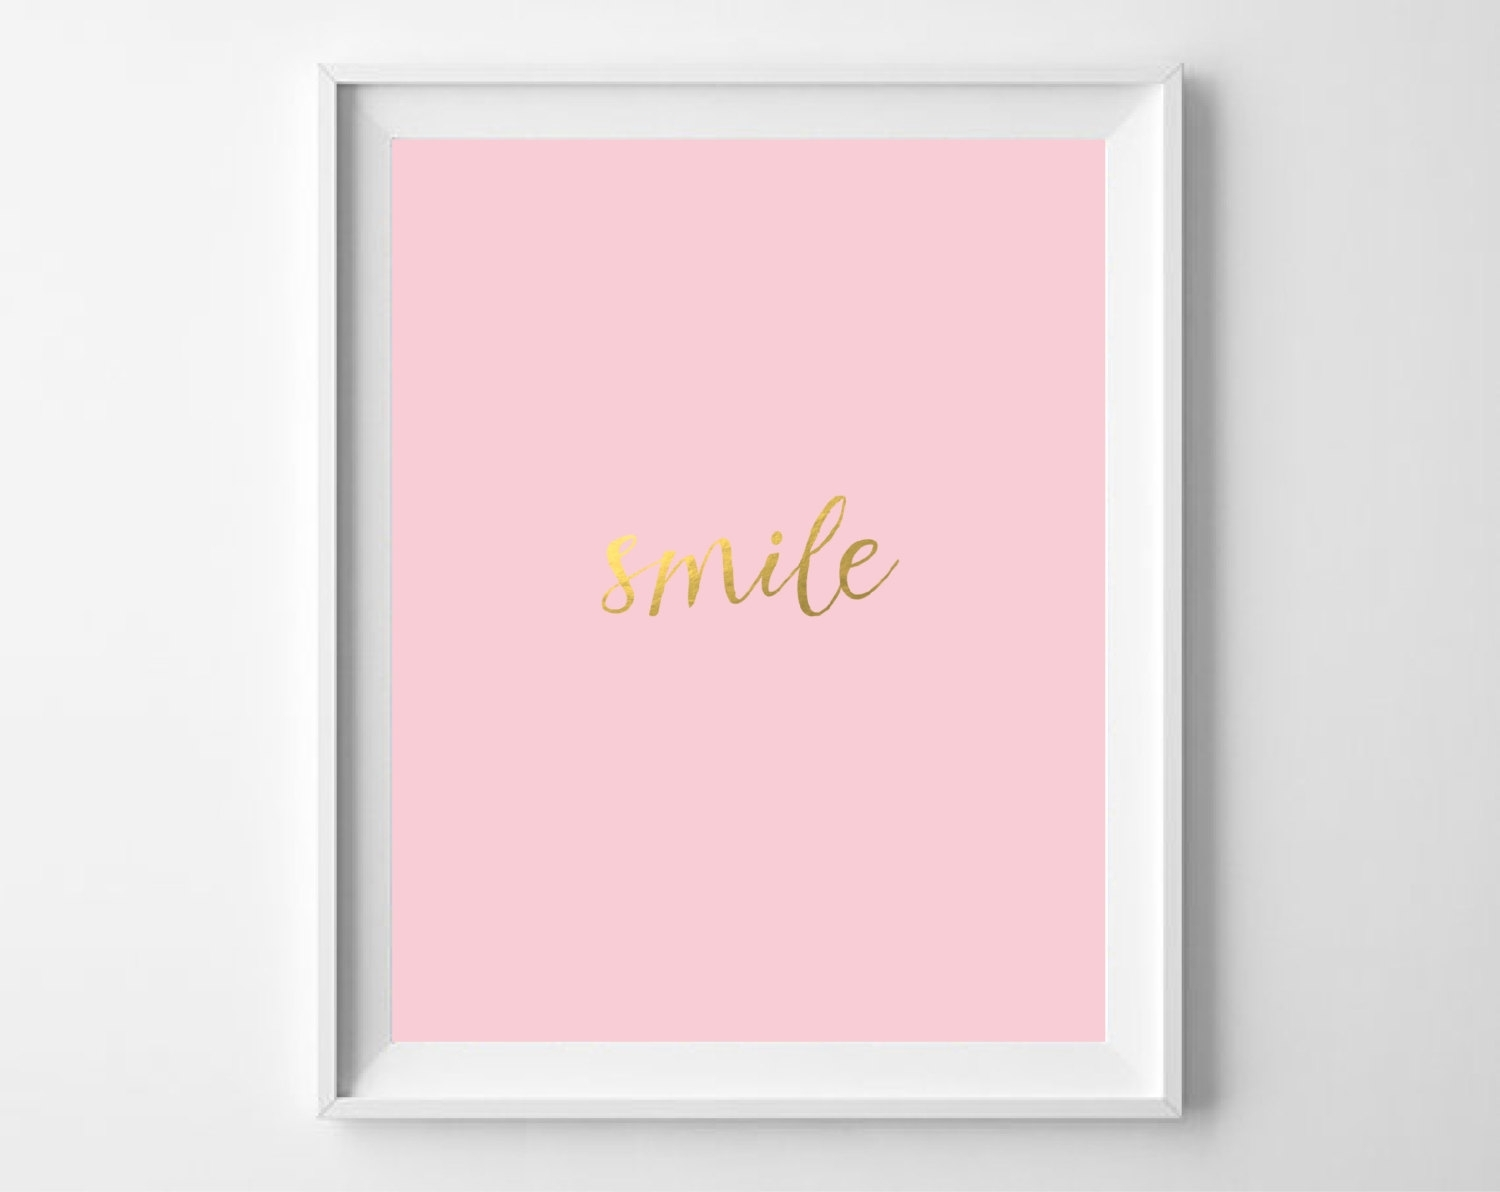 Smile Gold Foil Print Printable Blush Pink Gold Wall Art | Etsy With Regard To Most Current Gold Foil Wall Art (View 6 of 20)